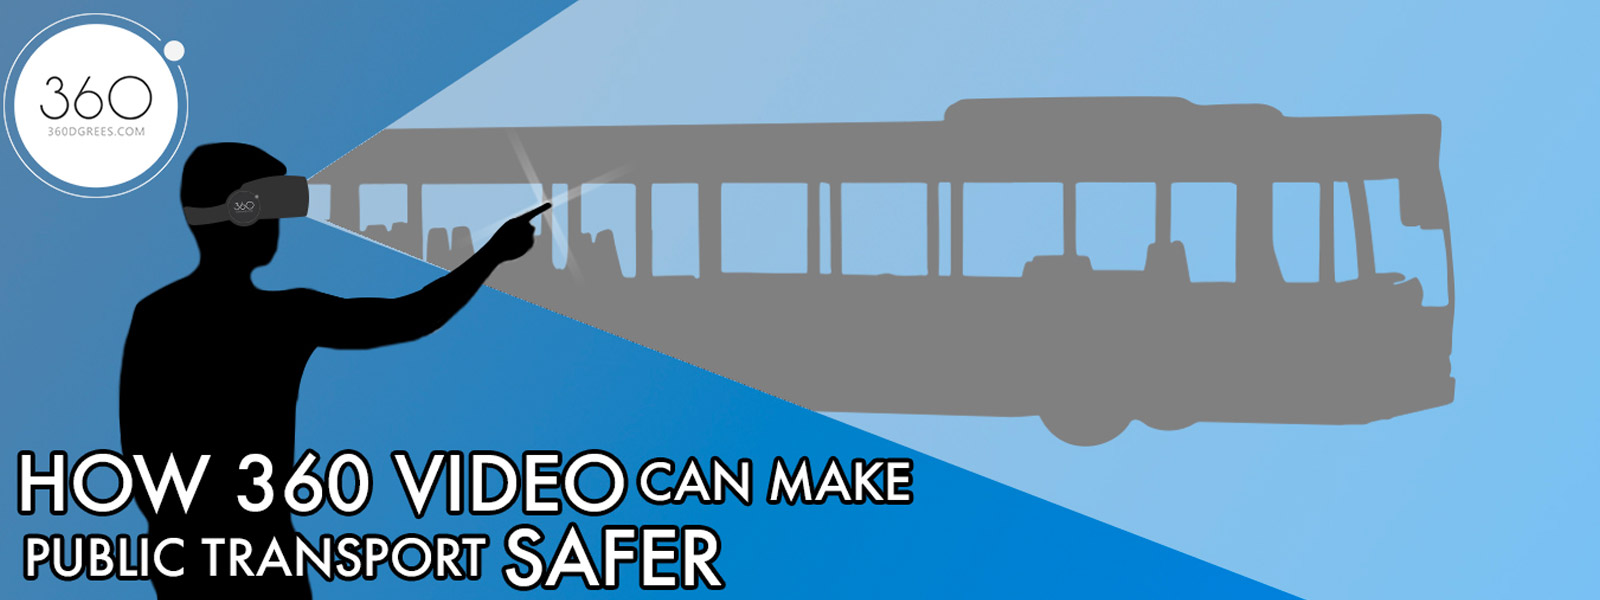 how-360-video-can-make-public-transport-safer